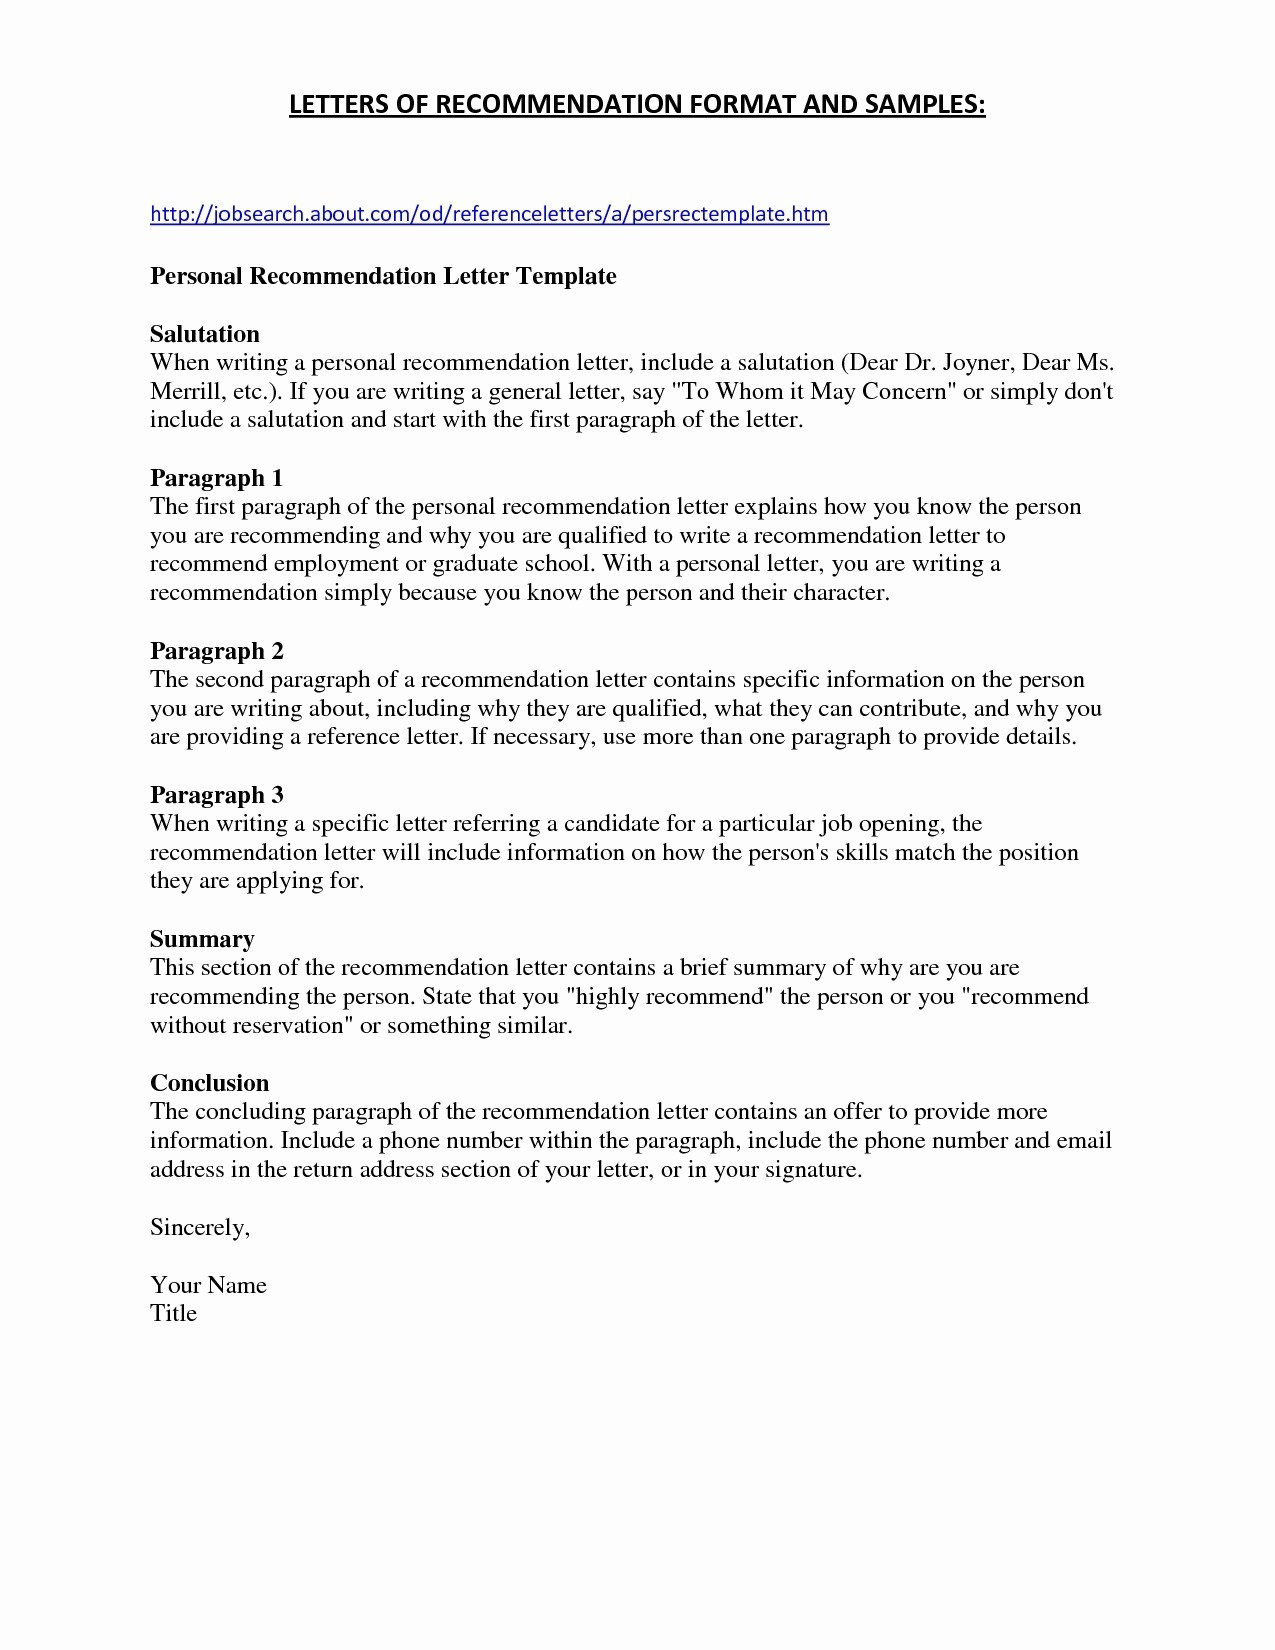 Resume Template for Business Analyst - Functional Business Analyst Resume New It Business Analyst Resume